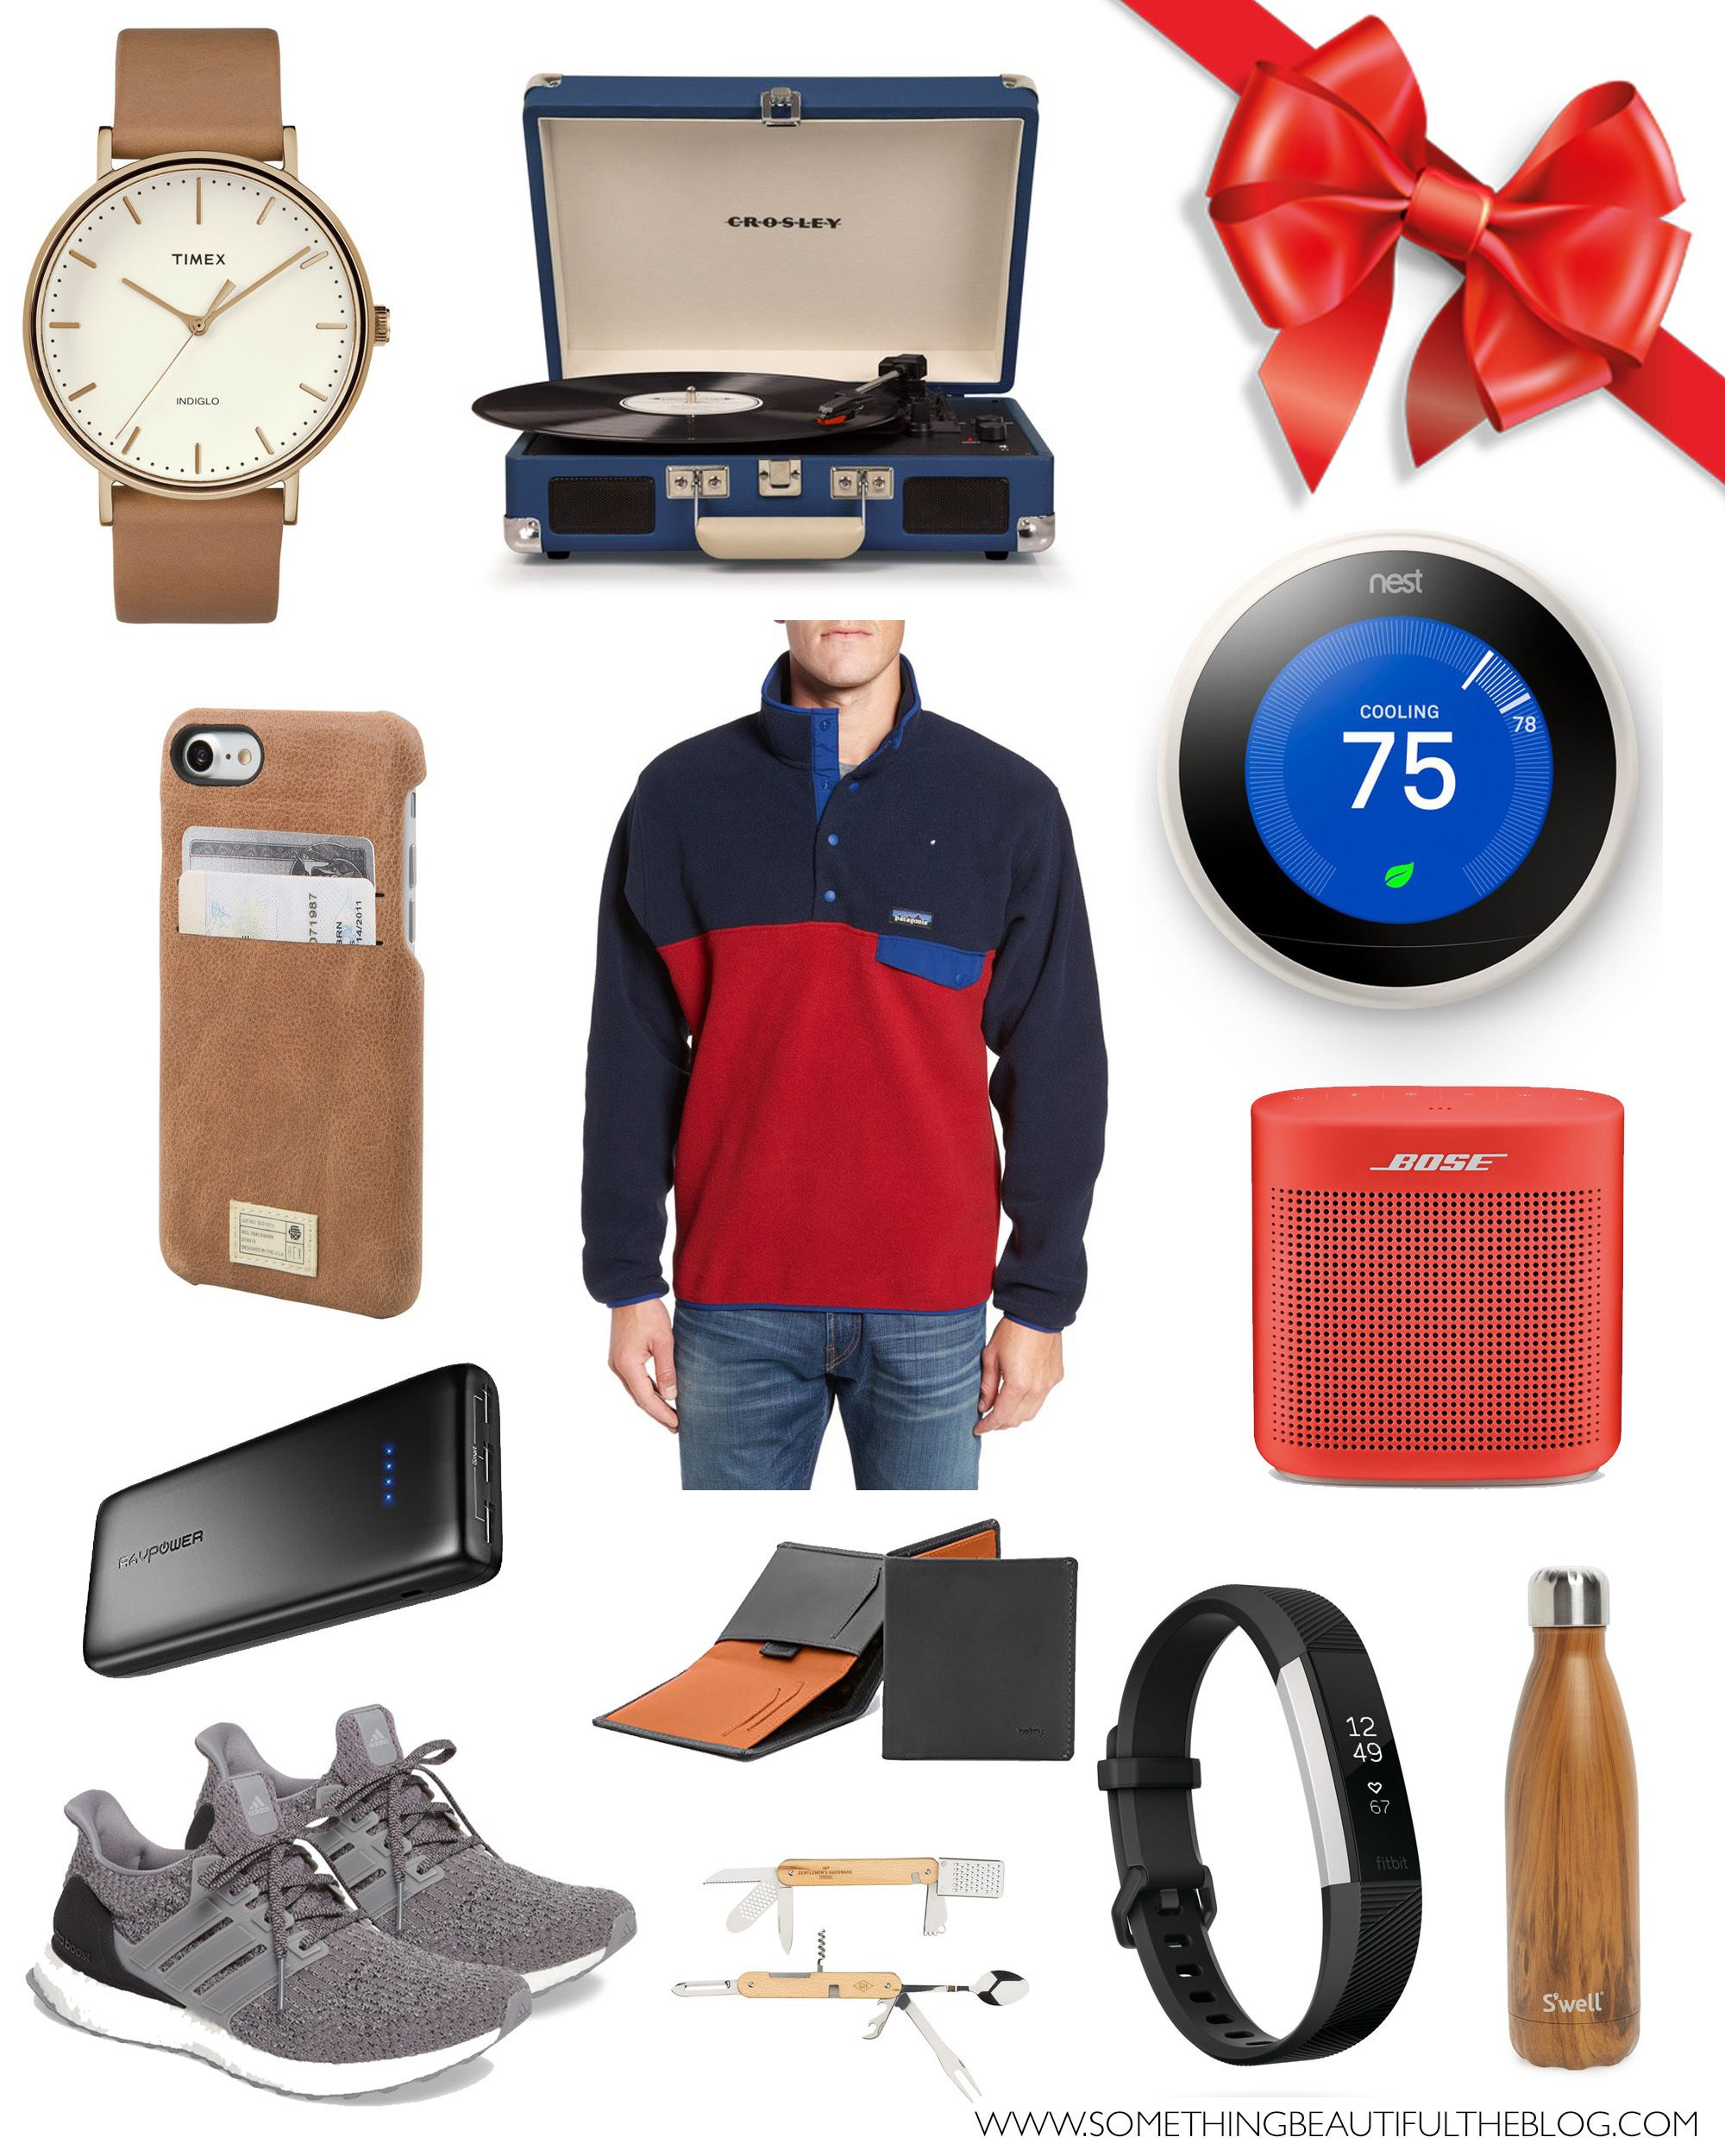 Gifts For Him On The Blog Giftguide2017 Christmas